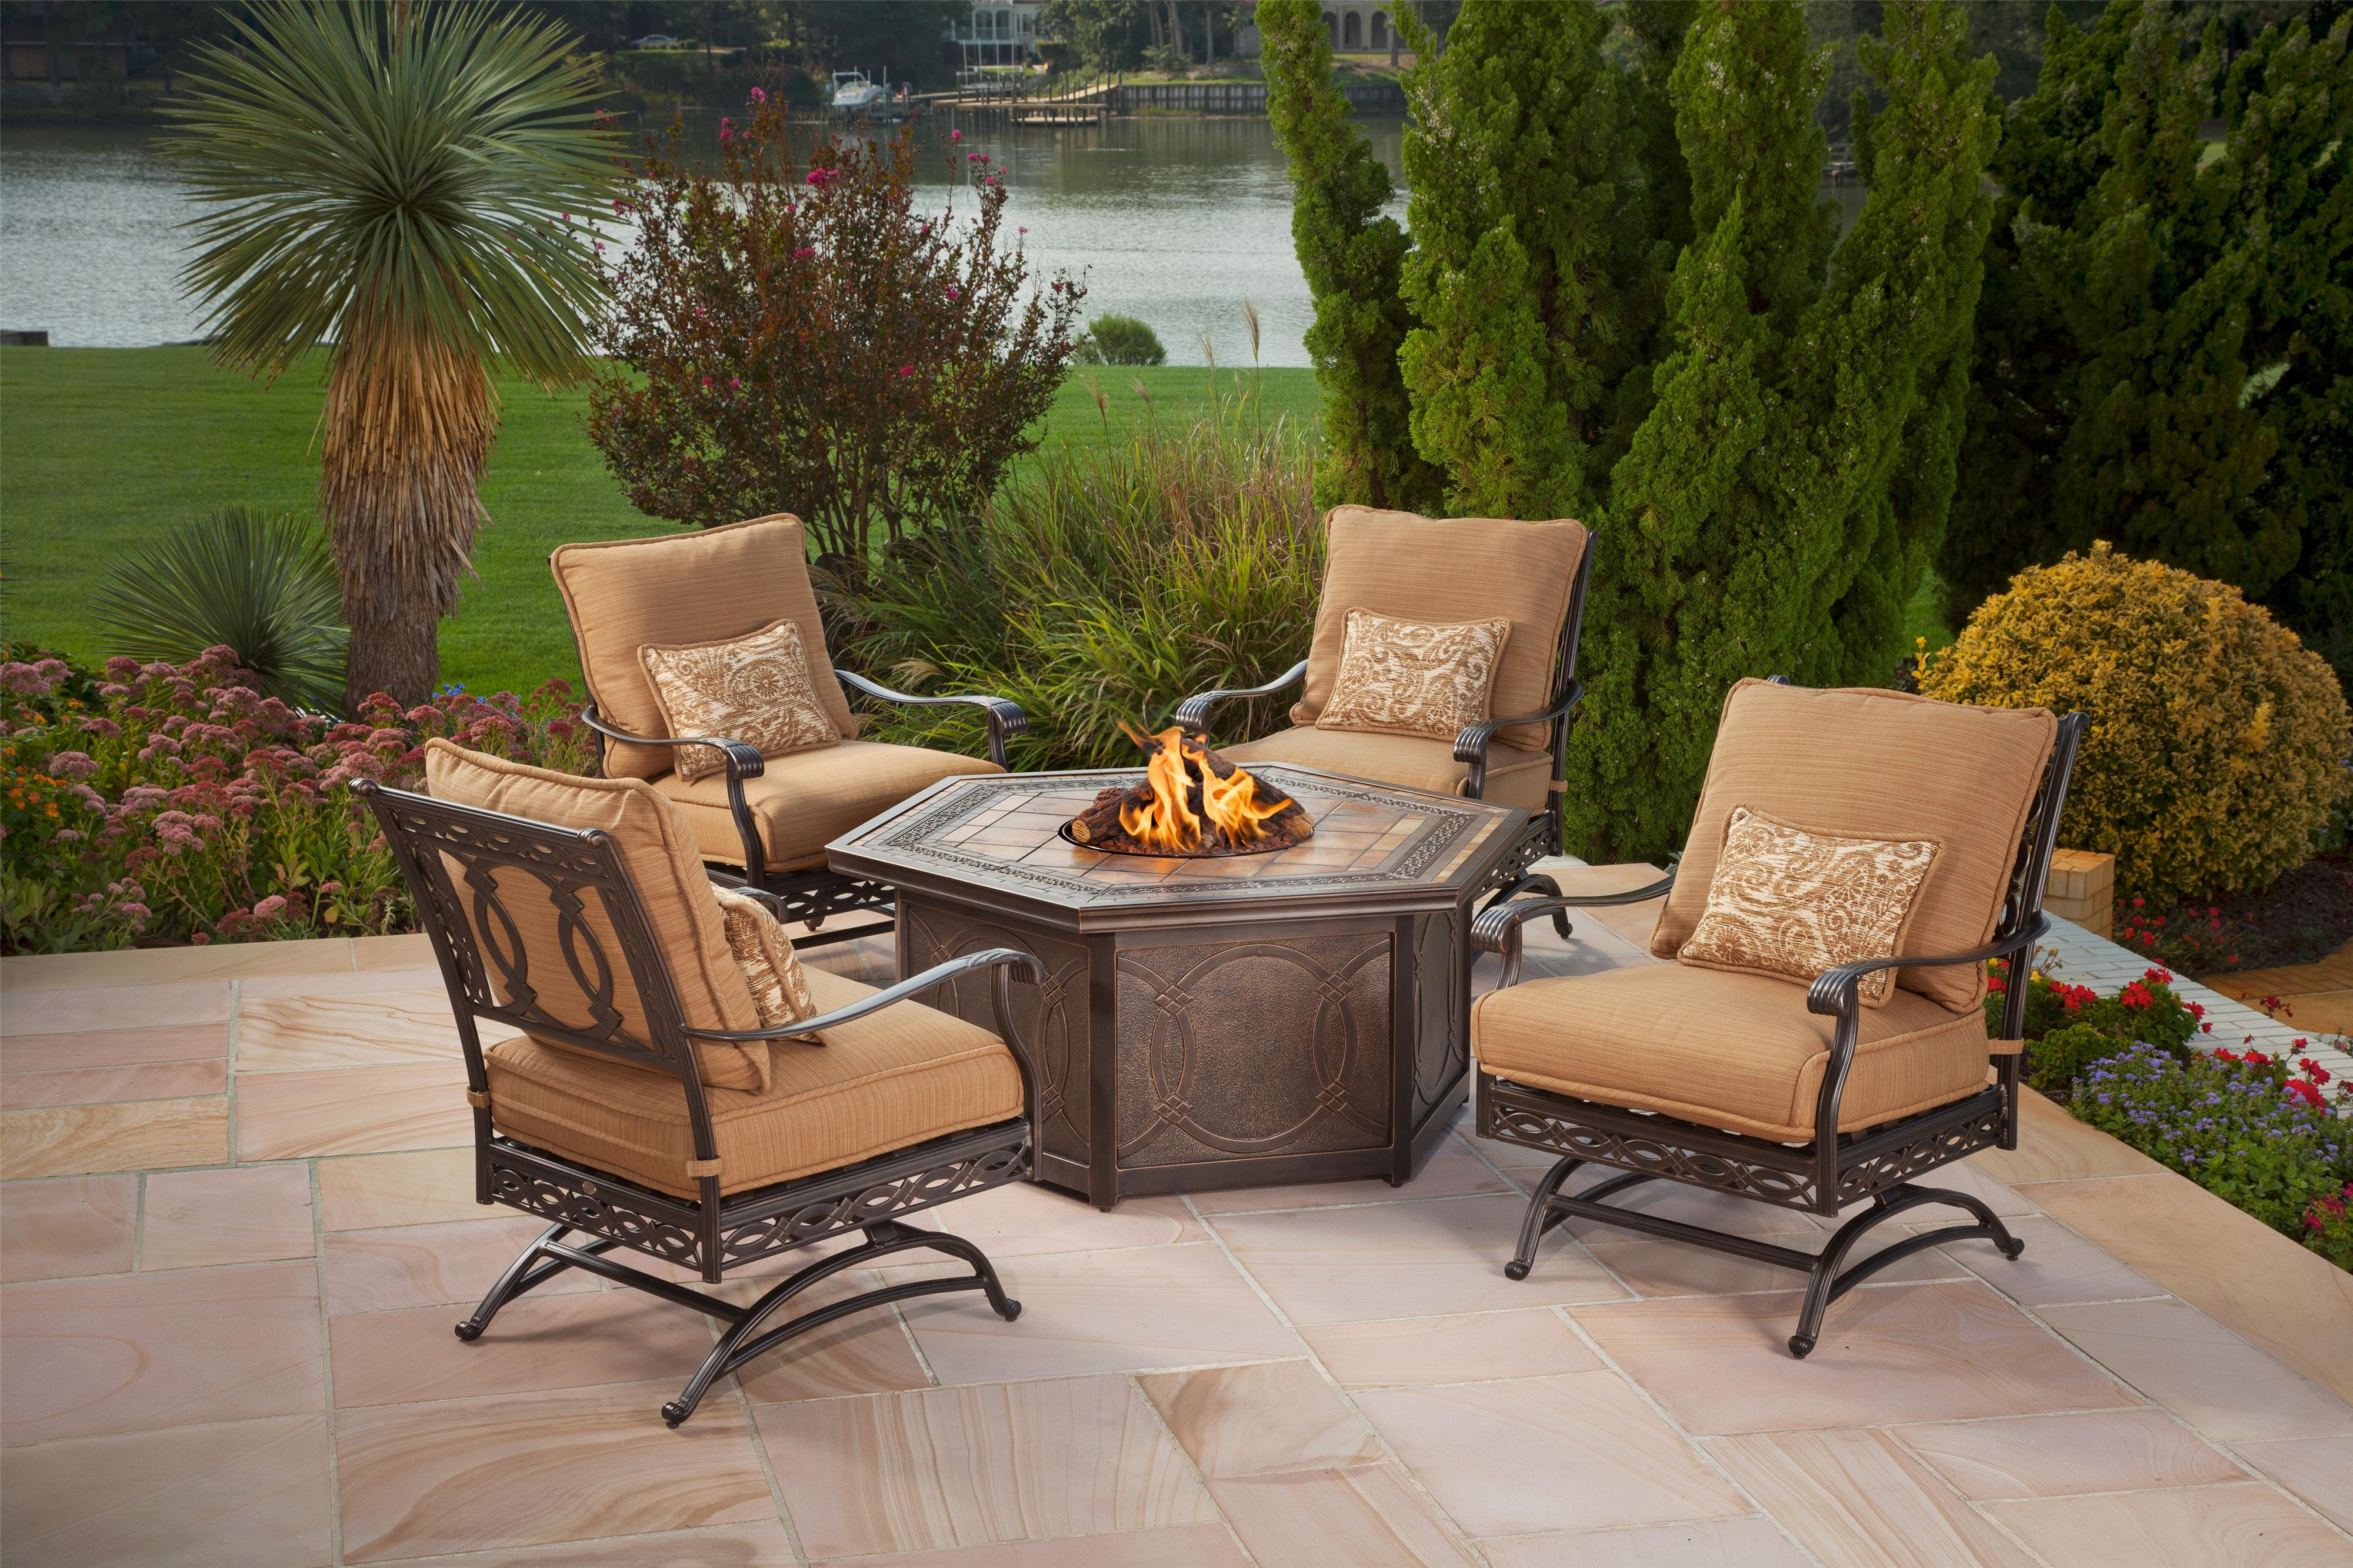 Agio Ashmost 5 Piece Spring Chair With Cushions And Firepit Chat Set   AHFA    Outdoor Conversation   Chat Set Dealer Locator